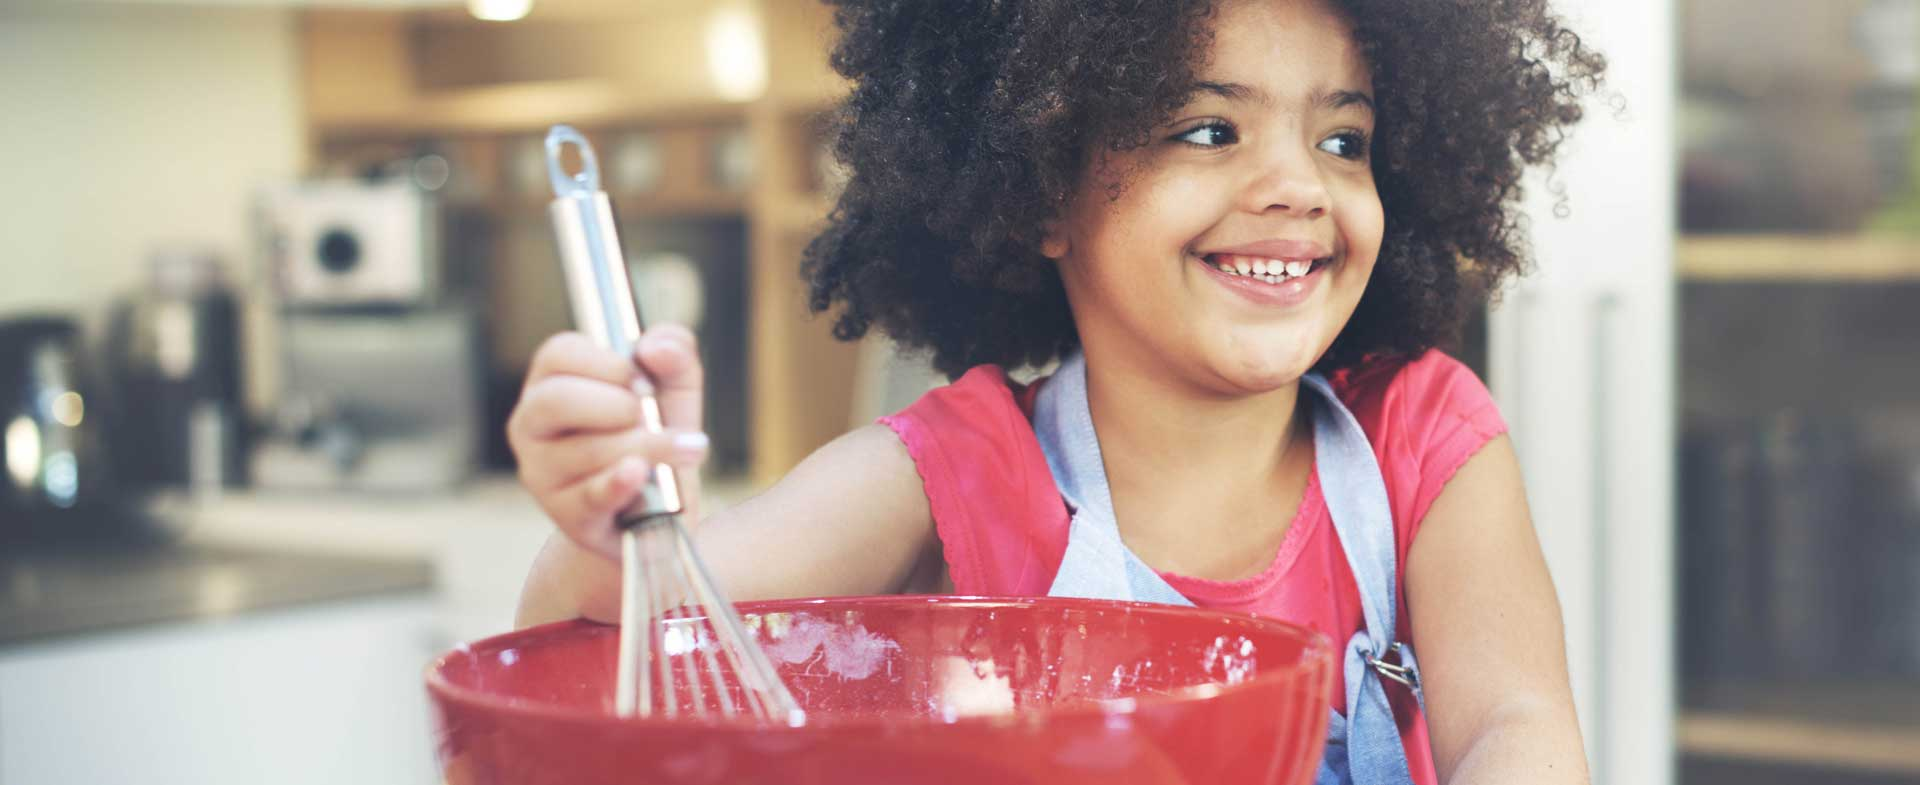 cooking with kids 1140x570